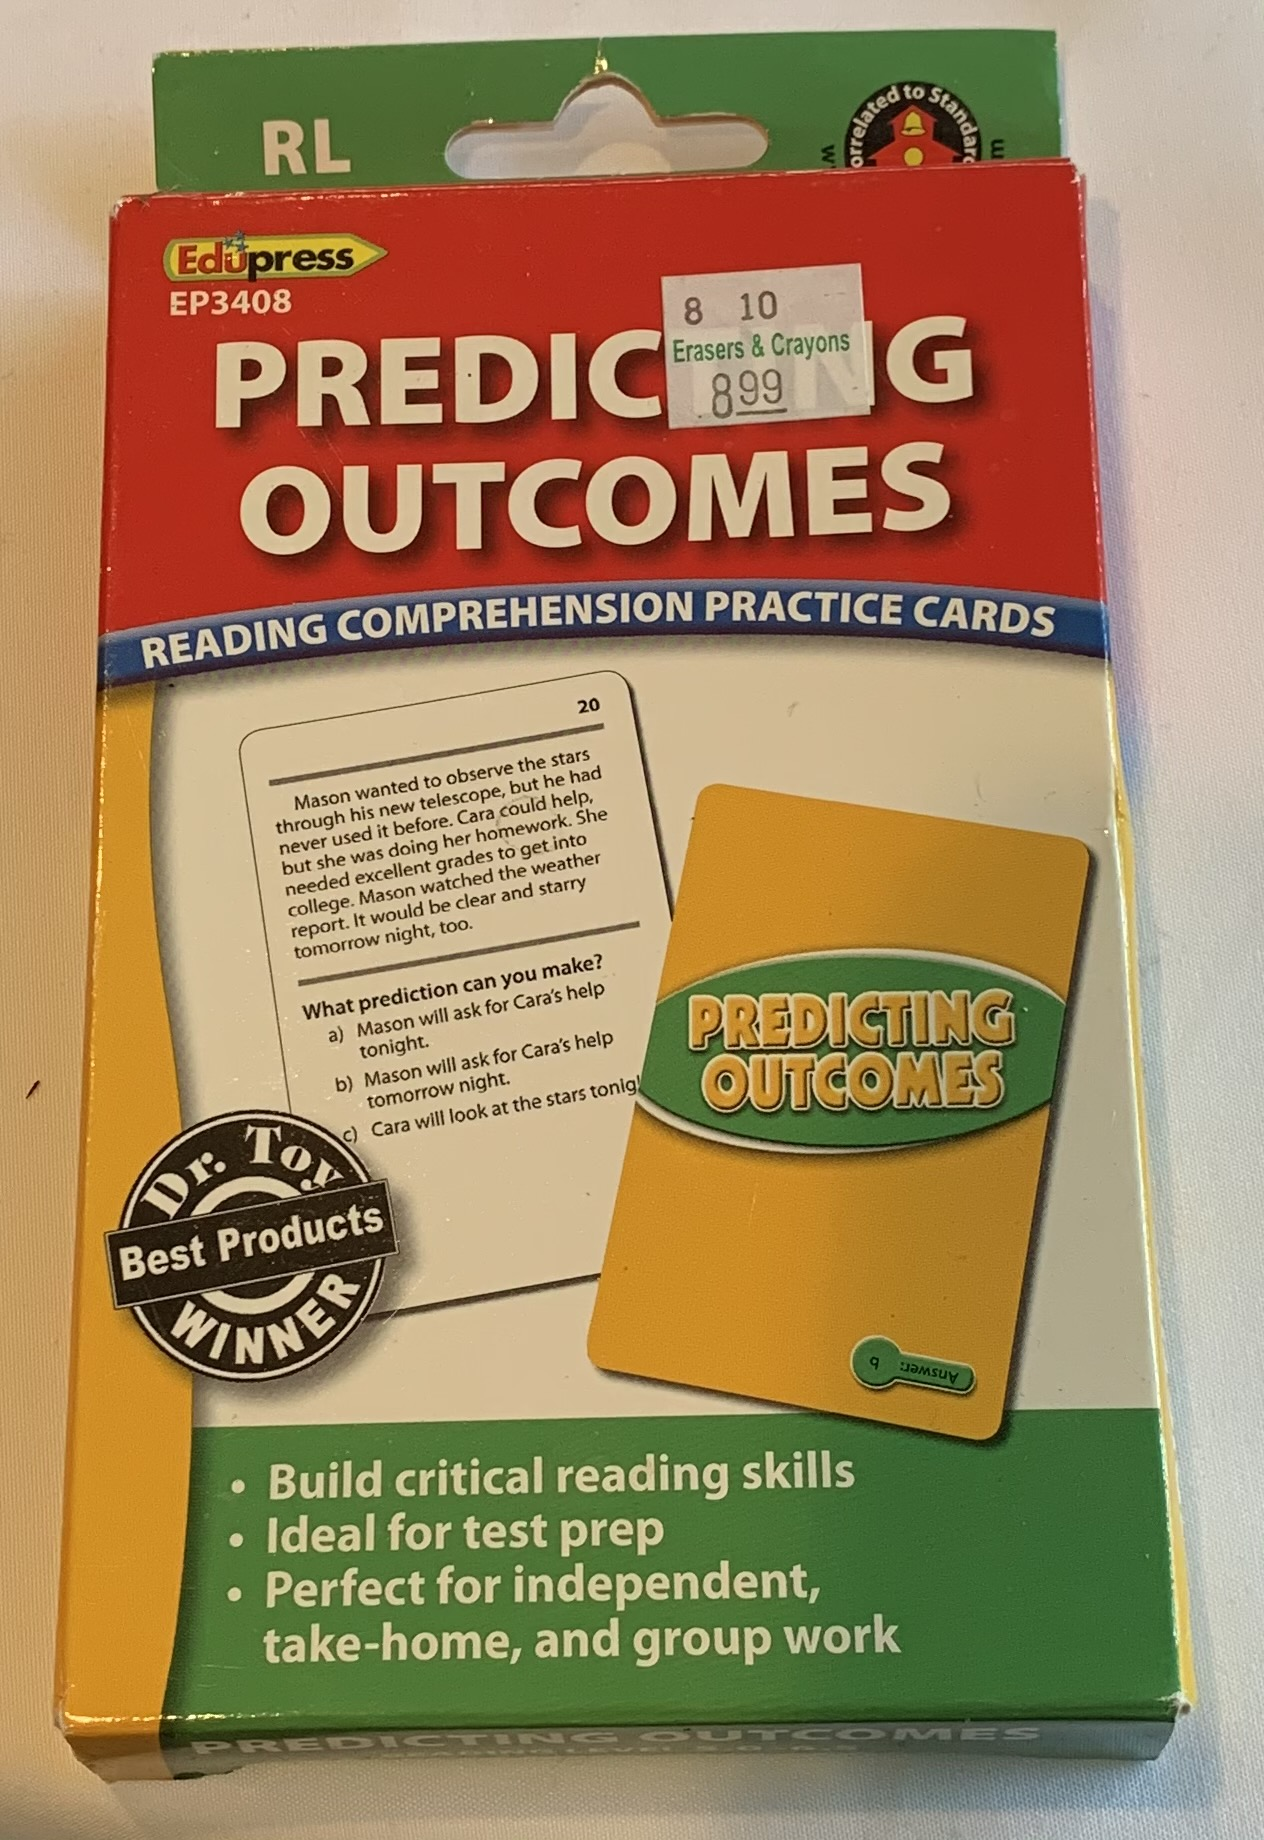 Reading Comprehension Cards -Predicting Outcomes